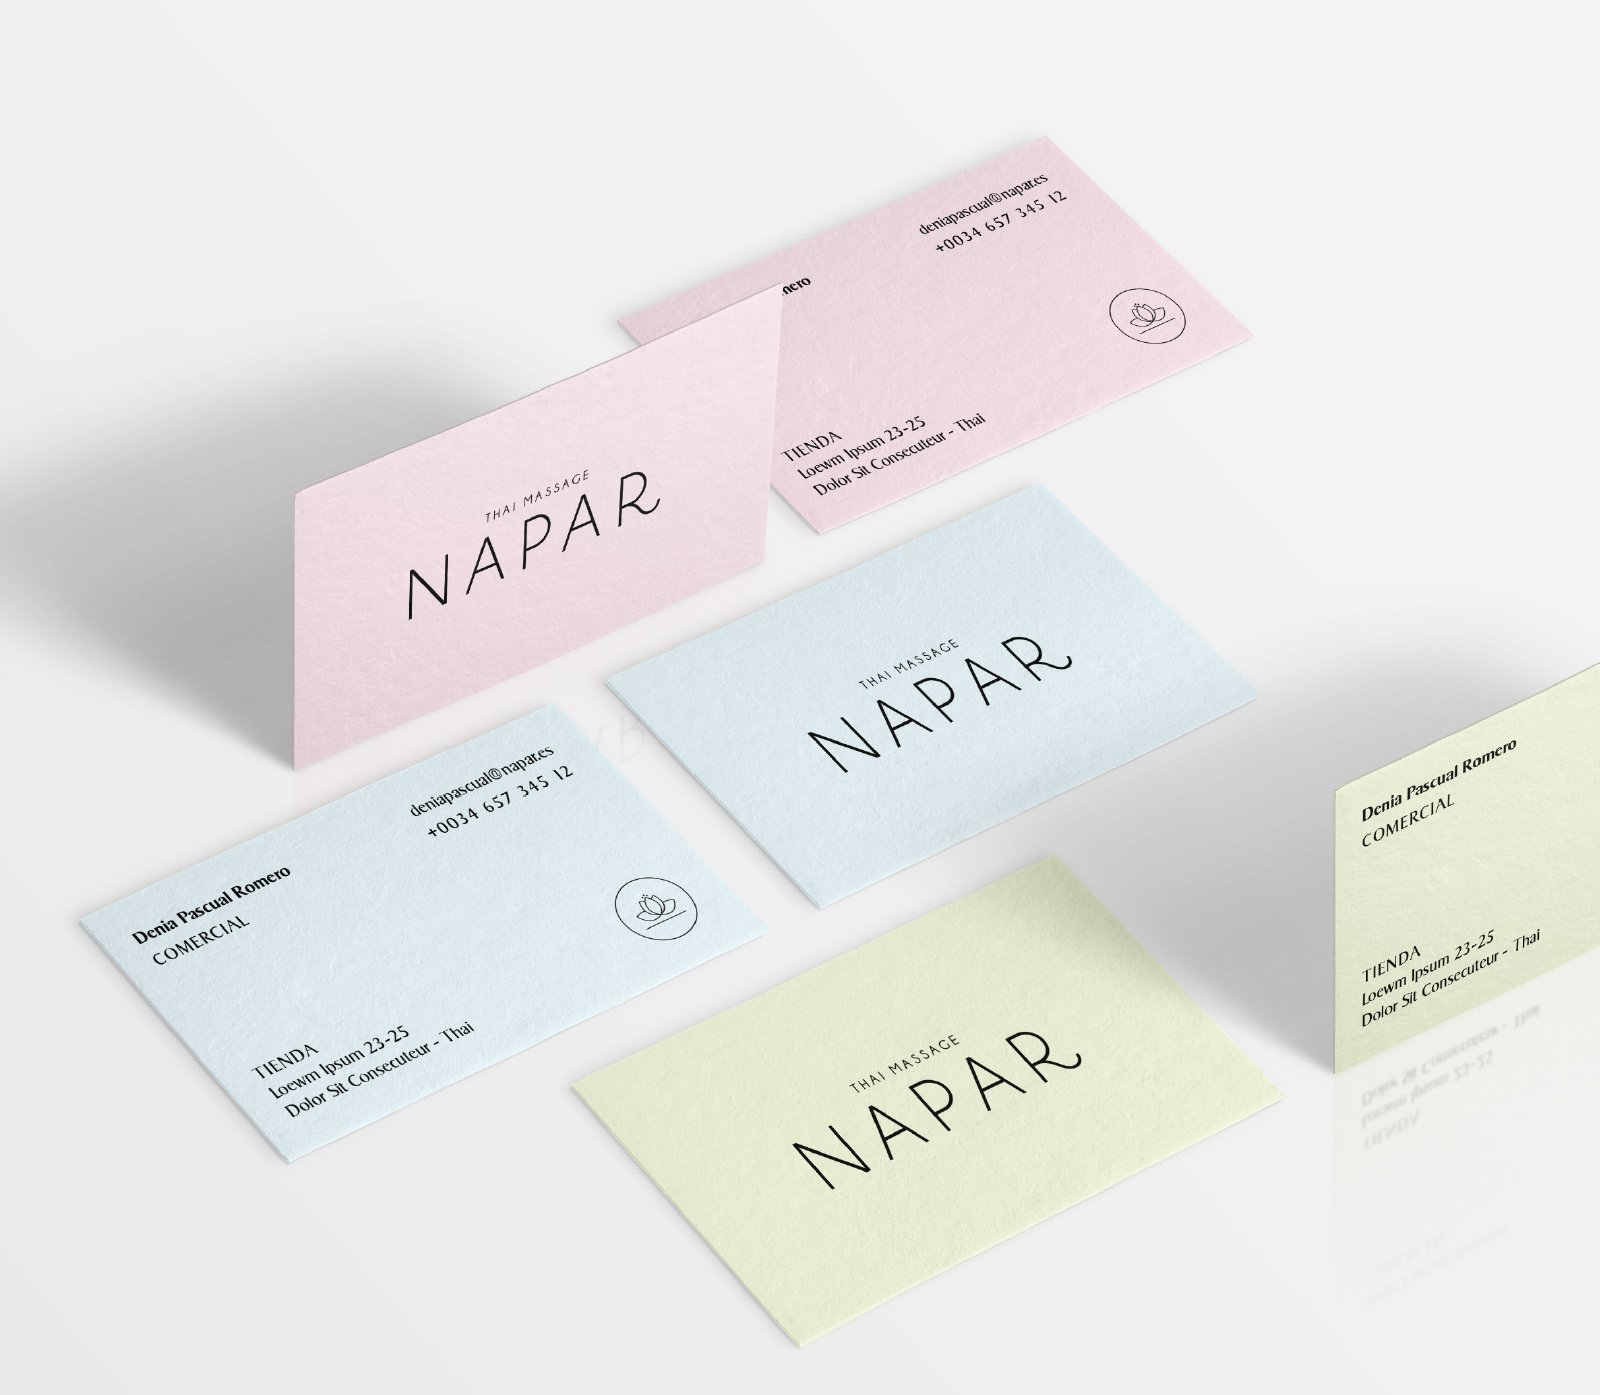 napar_thai_massage_business_card_design_x